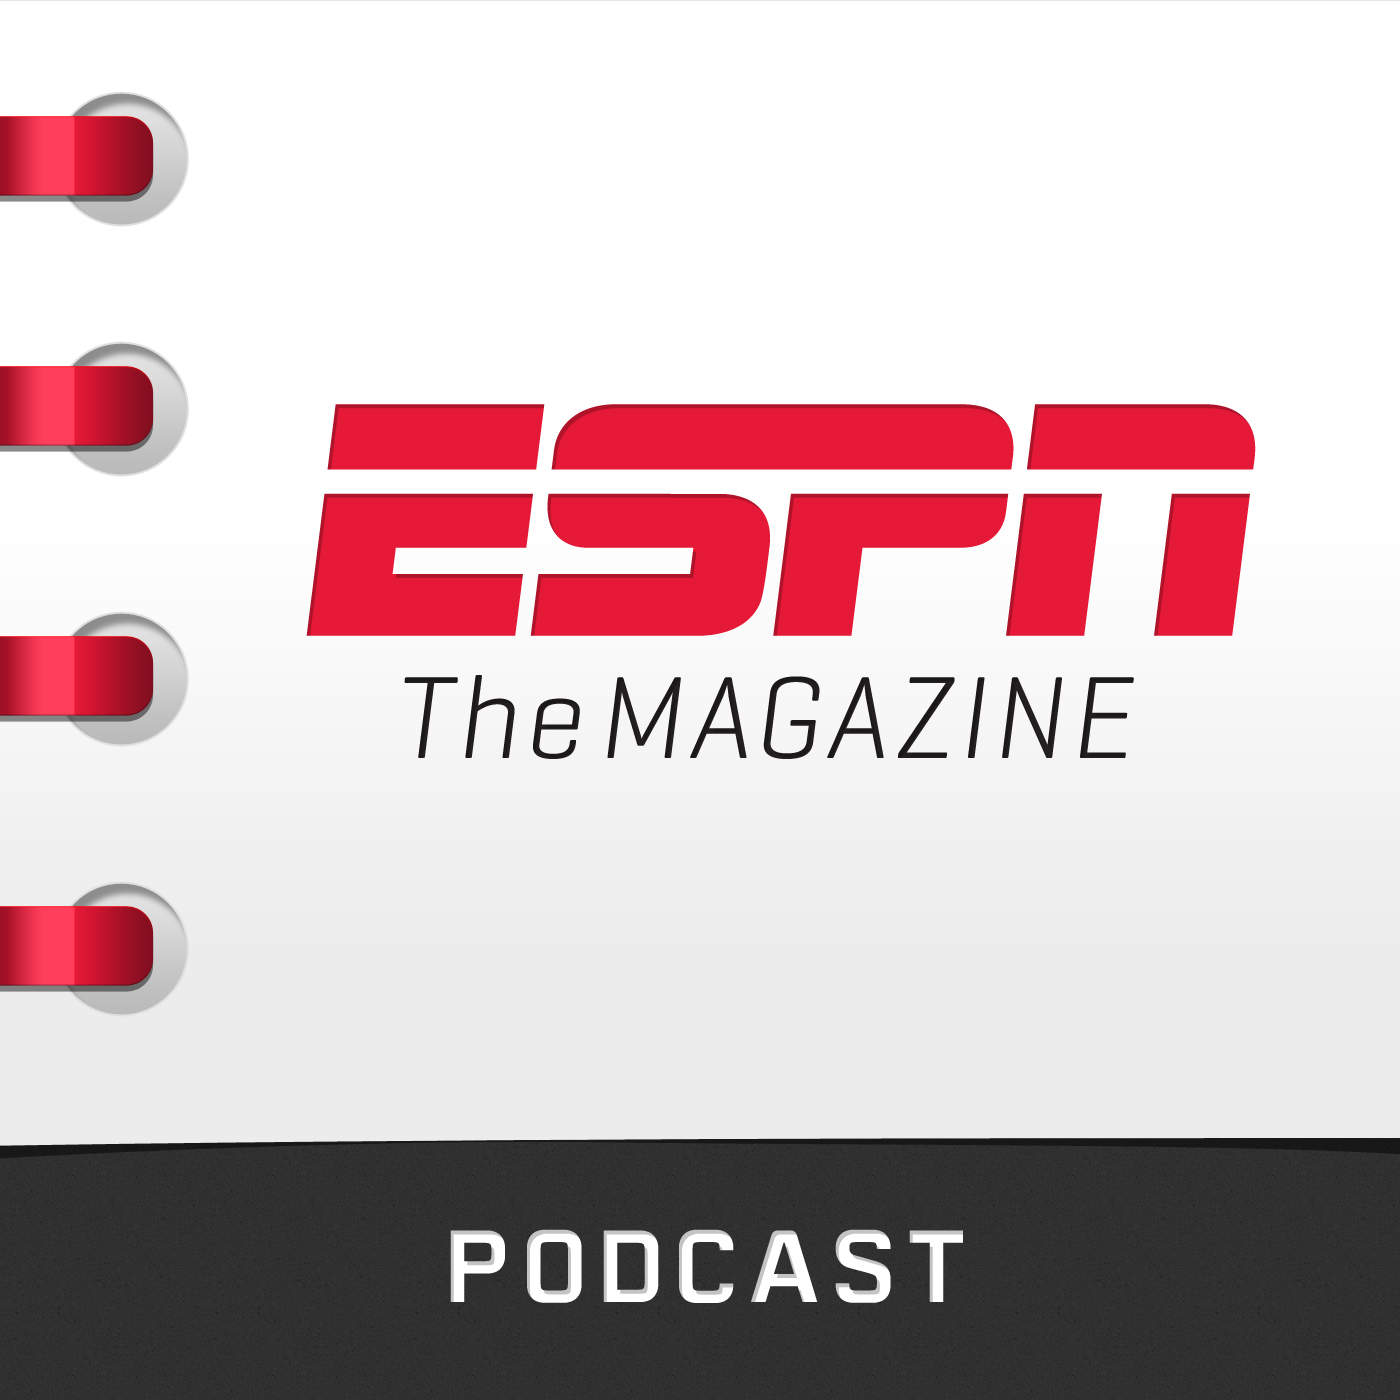 ESPN The Magazine Podcast